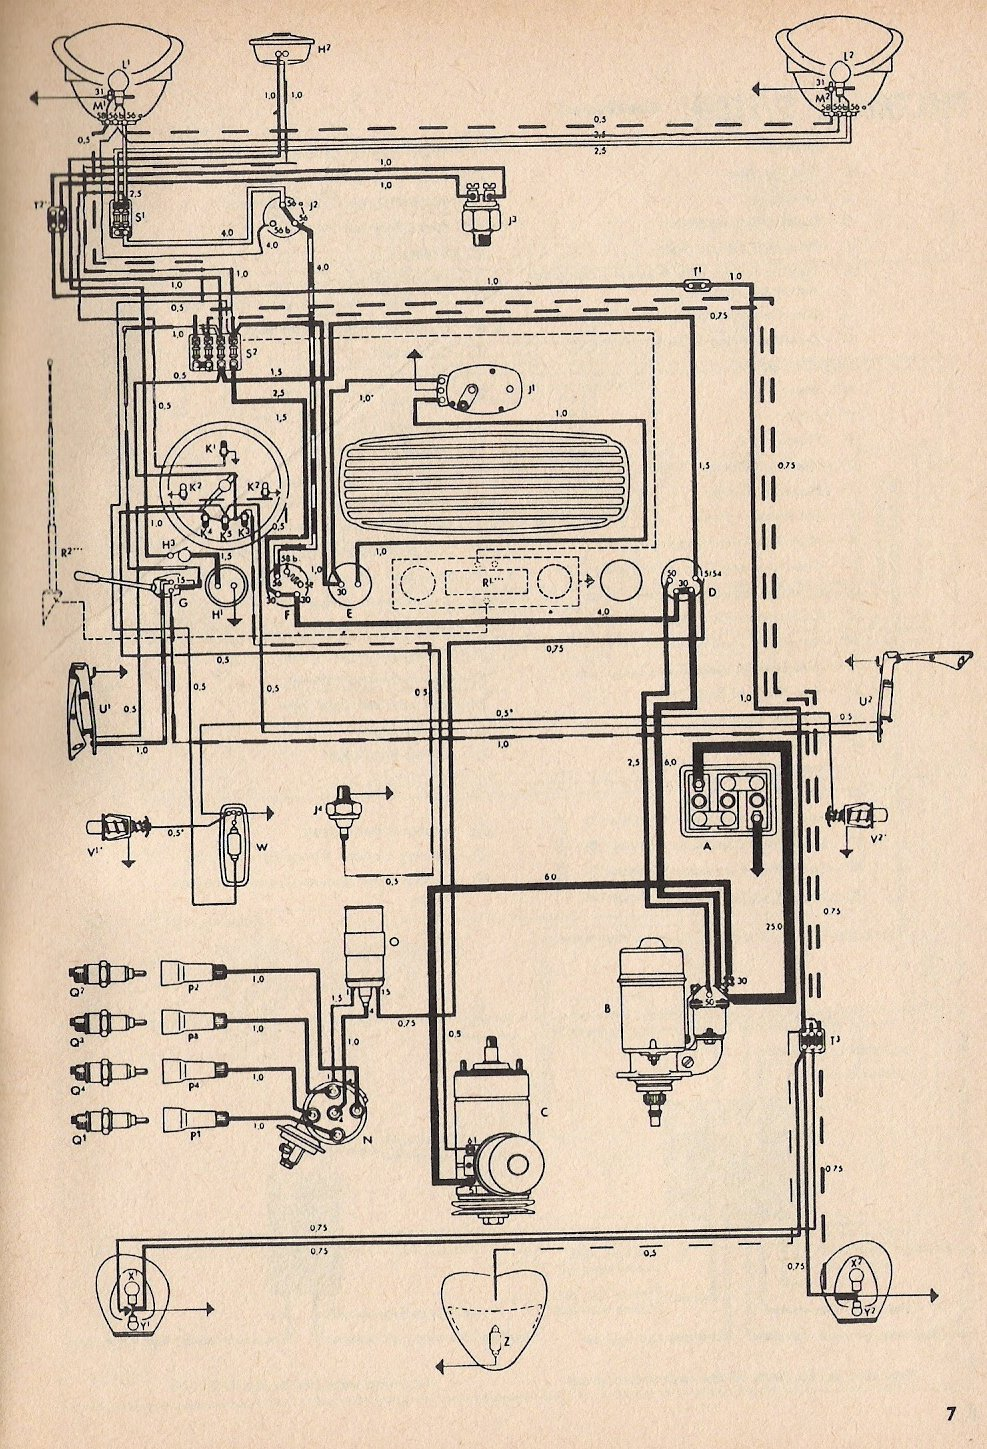 medium resolution of thesamba com type 1 wiring diagrams vw radio wiring diagram 1958 vw van wiring diagram